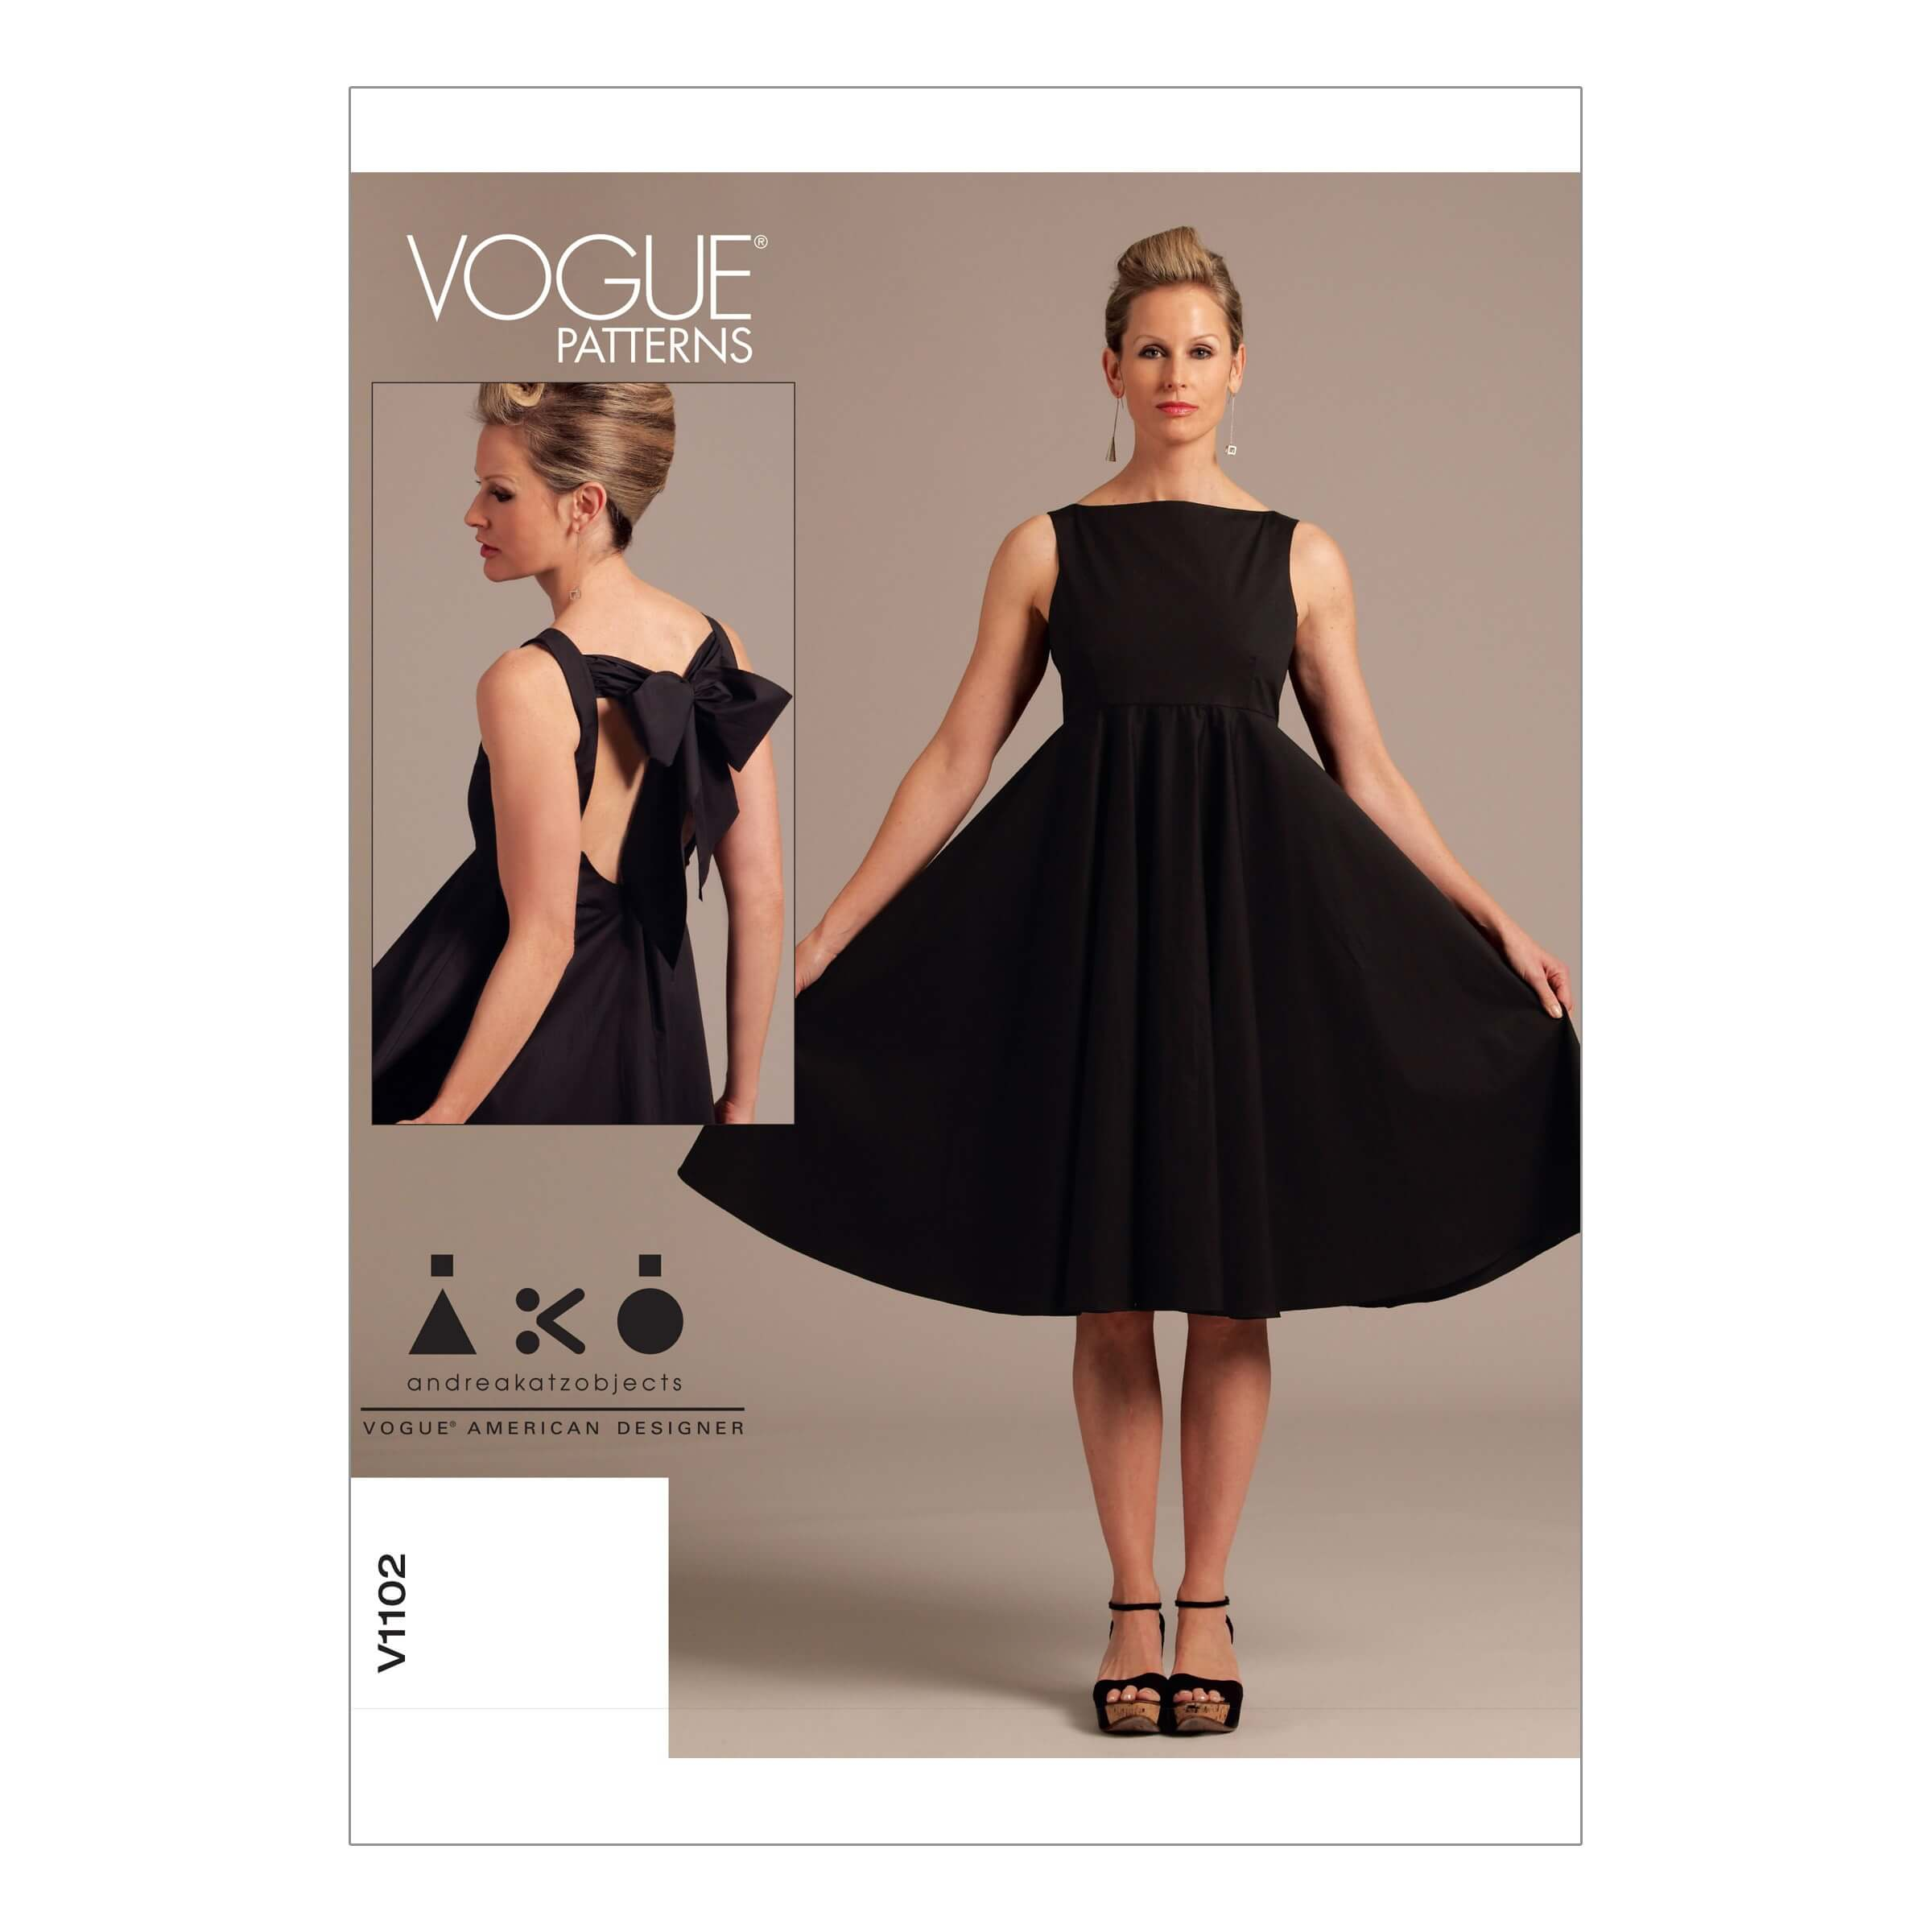 Vogue Sewing Pattern V1102 Women's High Waistline Occasion Dress